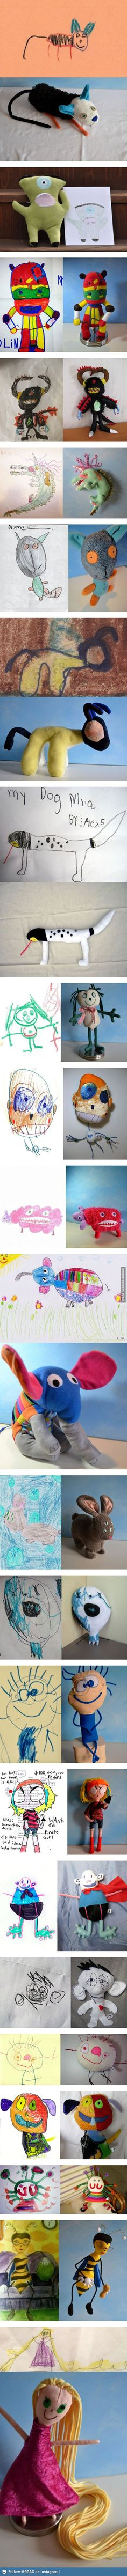 Making kids' drawings into dolls.